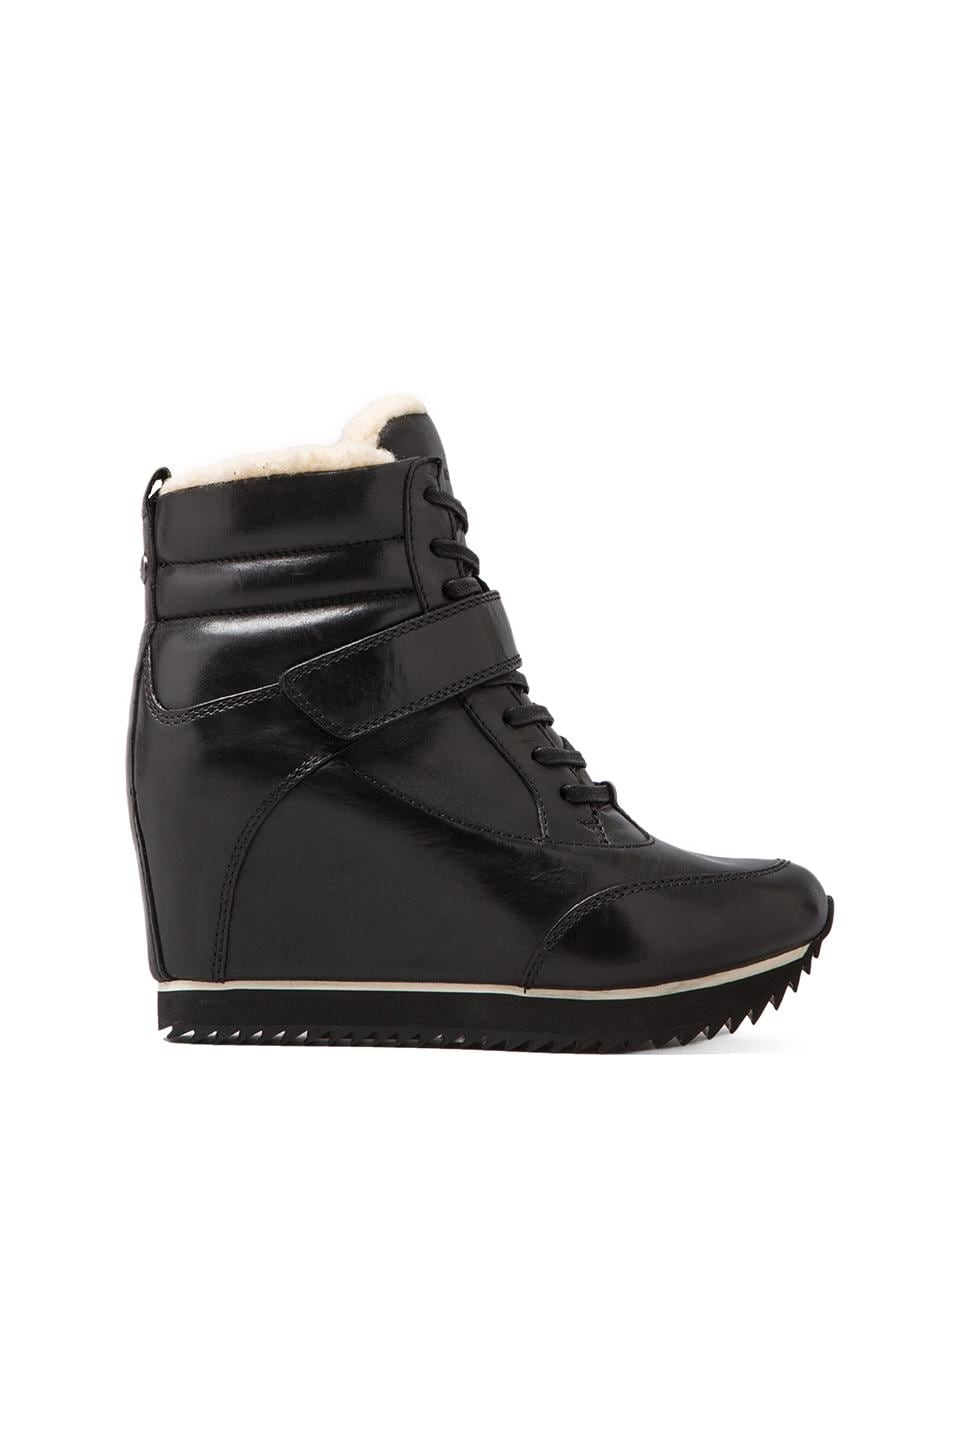 Koolaburra Snow Jog Wedge Sneaker with Sheep Wool in Black